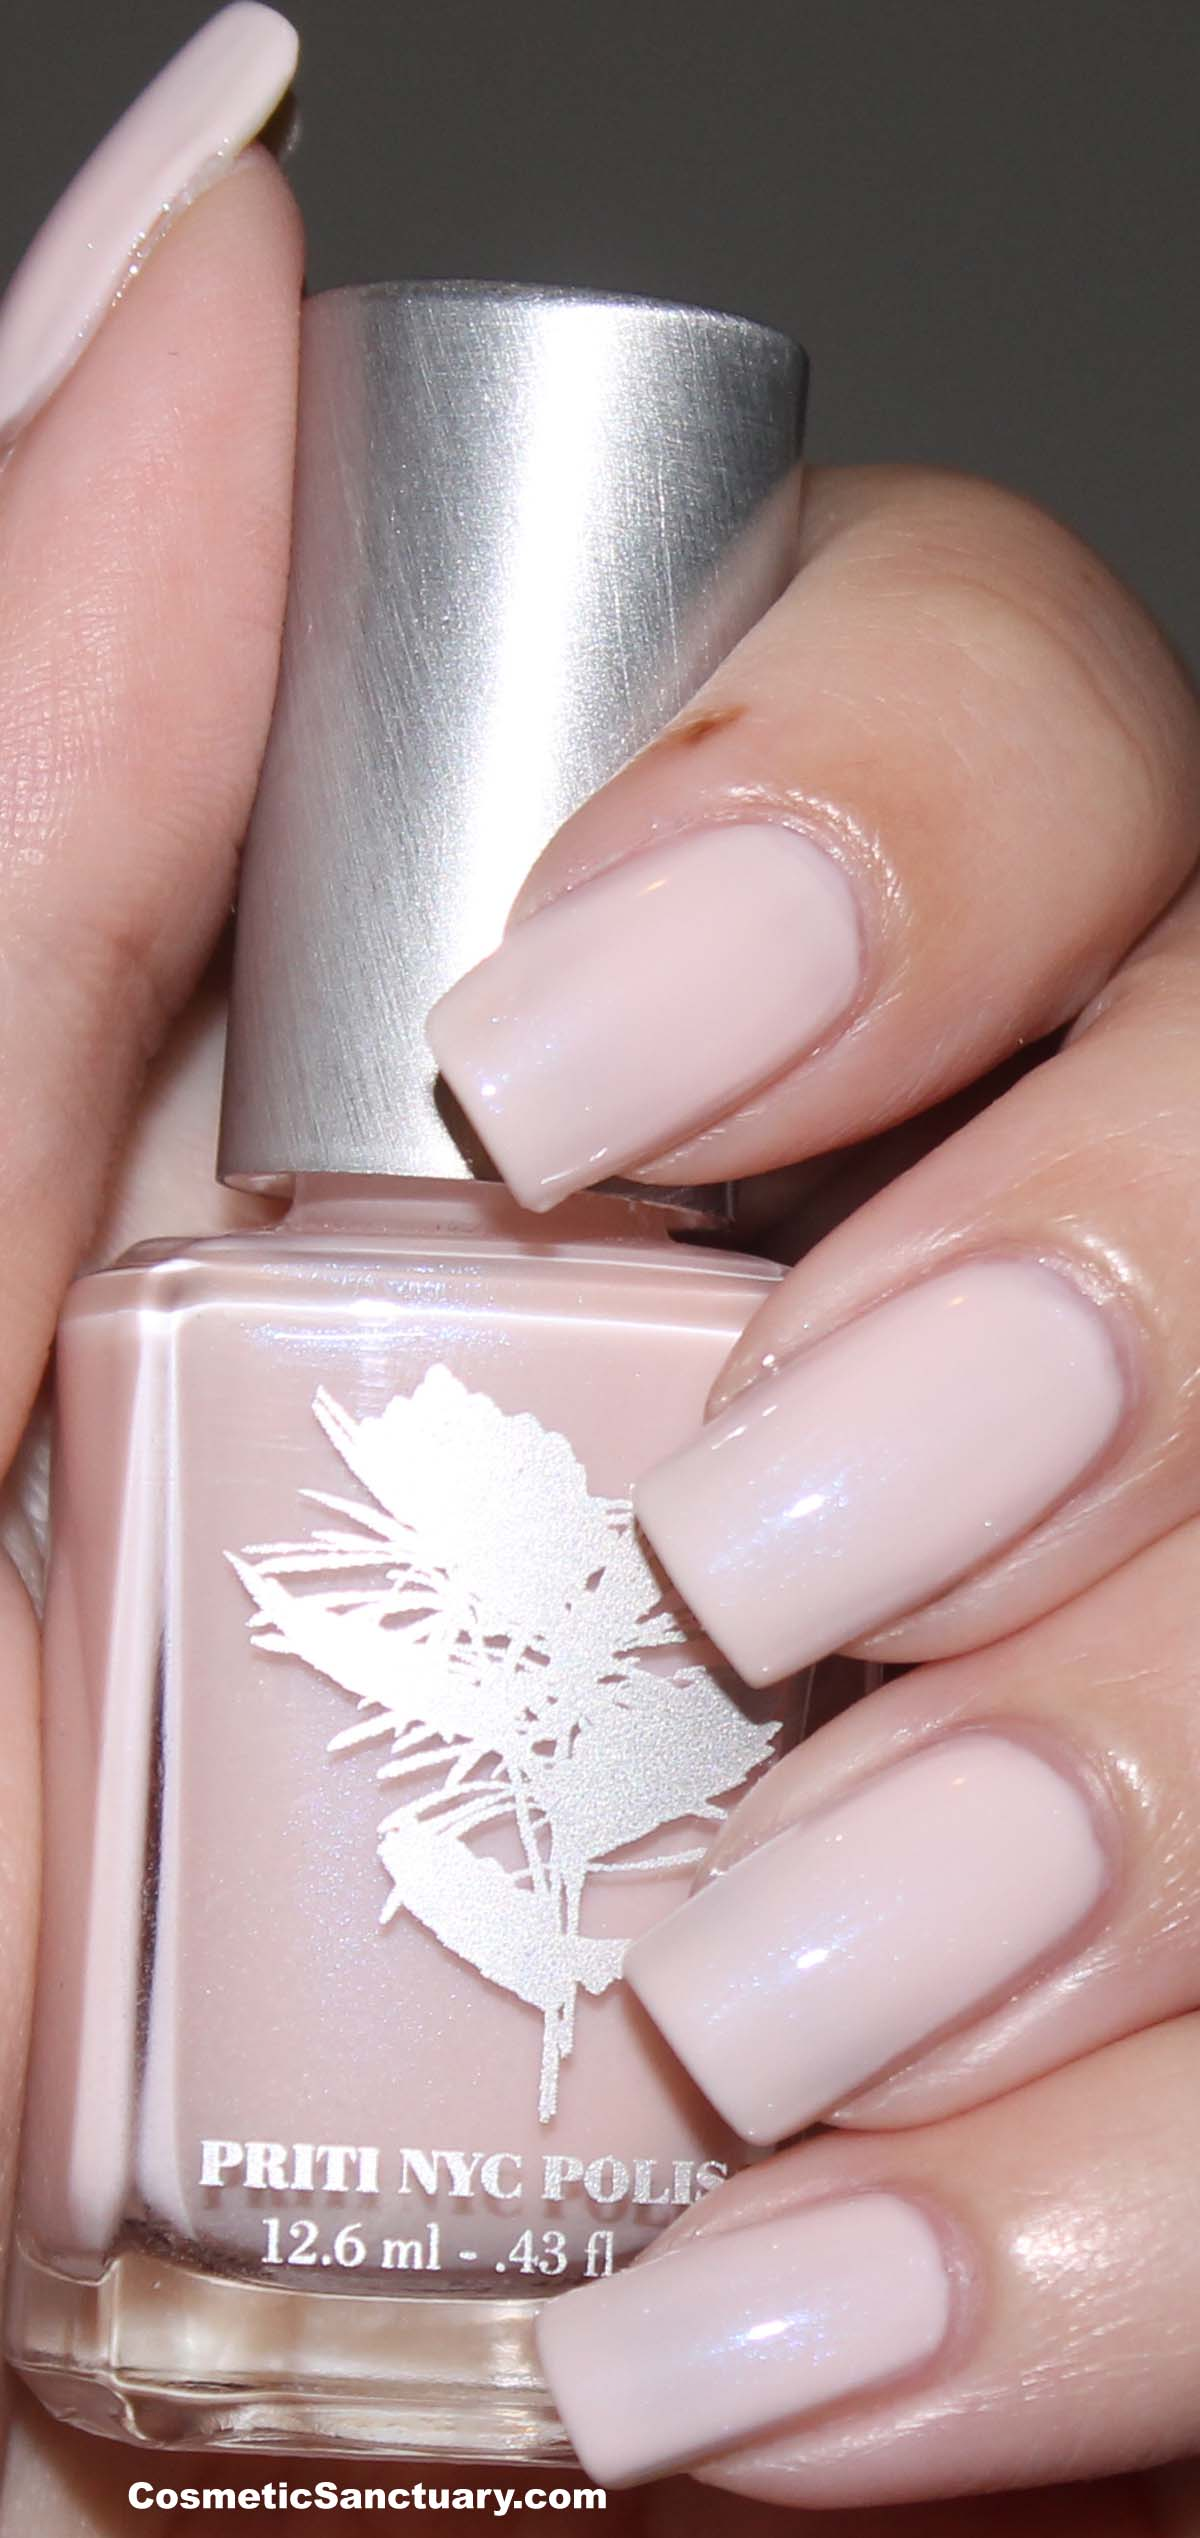 Priti NYC Pink Jewel Carnation and Soy Nail Polish Remover Swatch ...